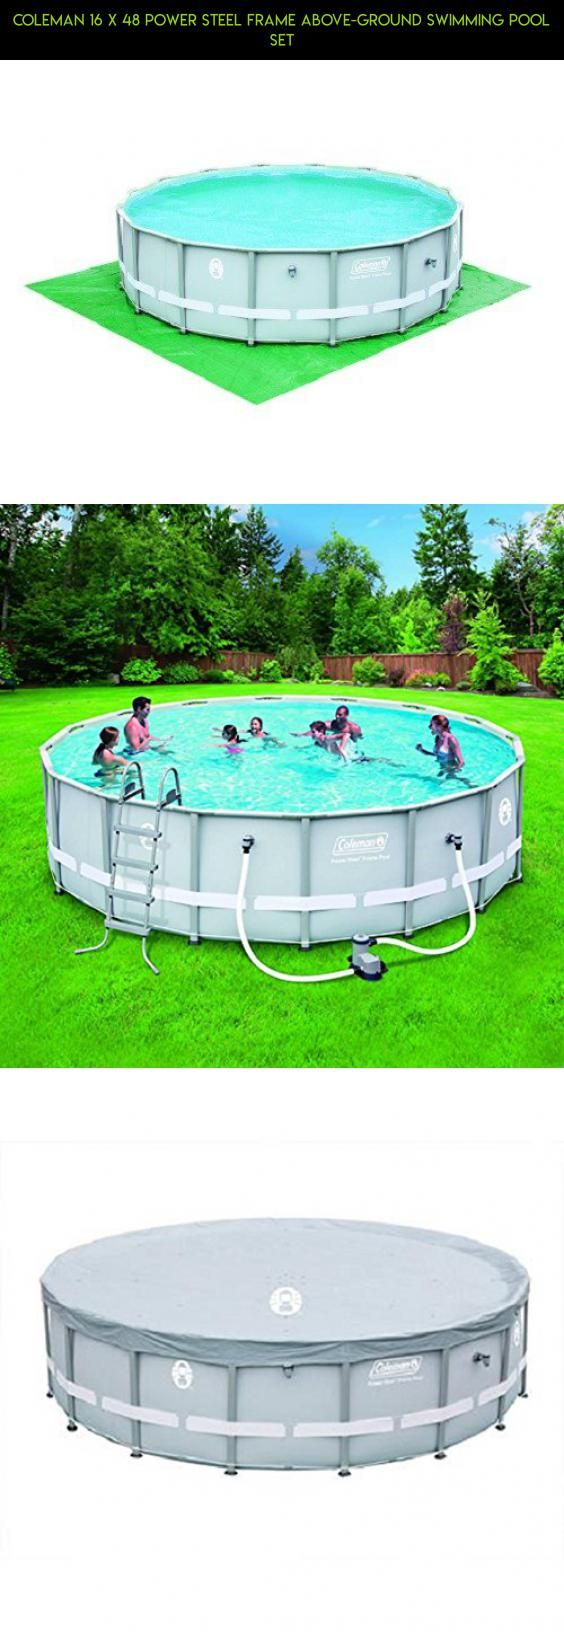 Coleman 16 x 48 Power Steel Frame Above-Ground Swimming Pool Set ...